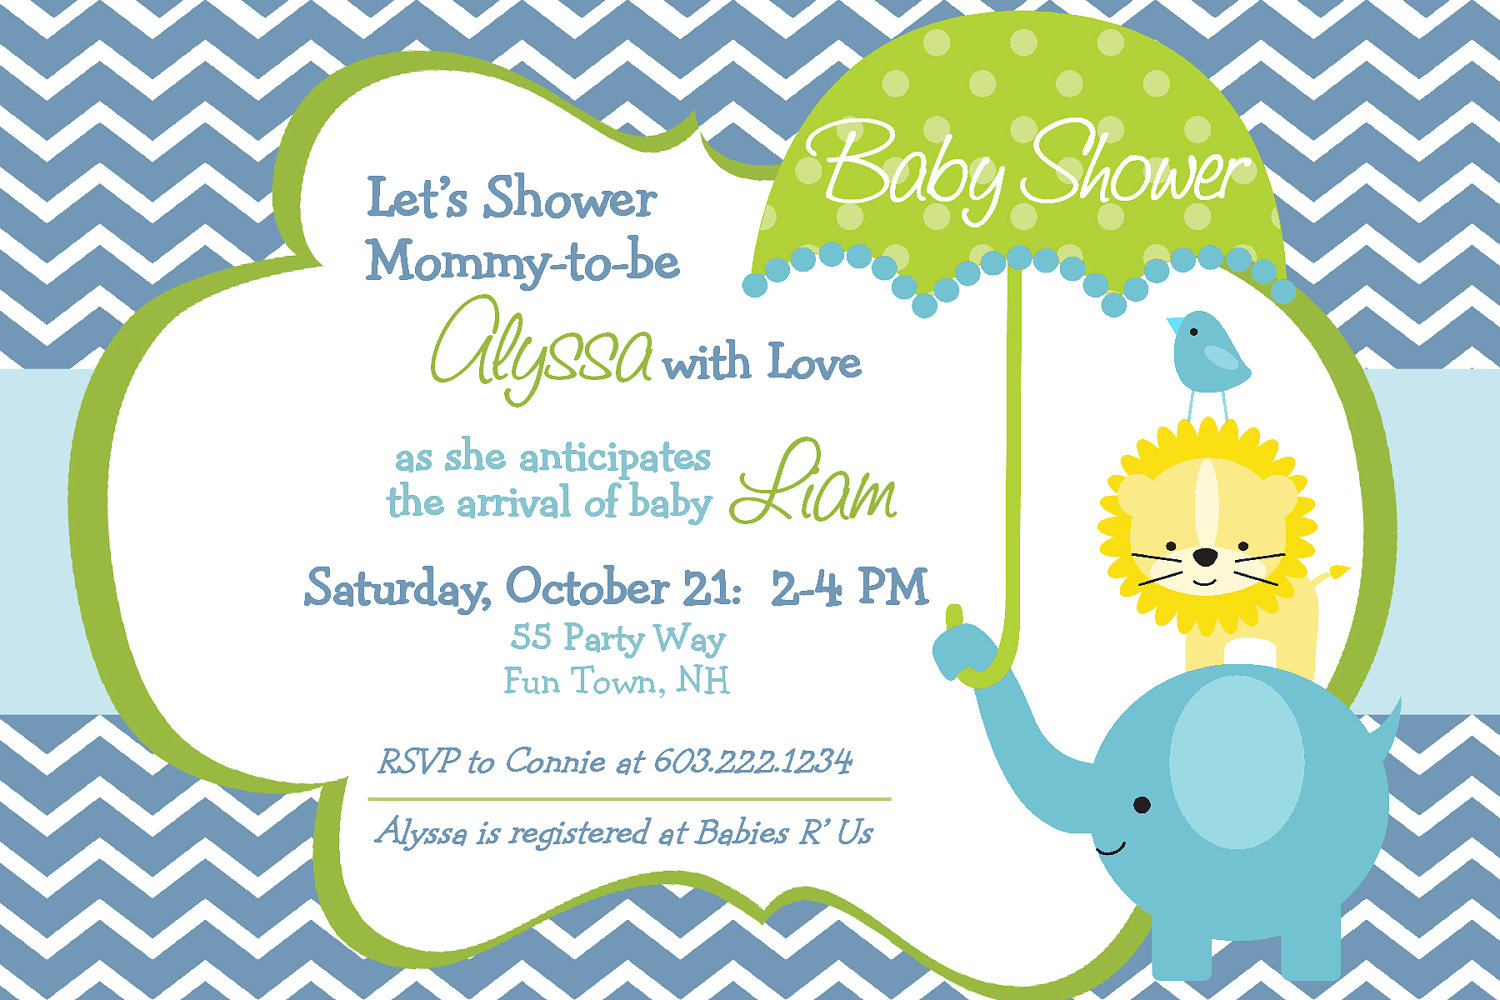 Fancy Baby Shower Invitations Best Baby Shower Invitations For Boys throughout Baby Boy Baby Shower Invitations